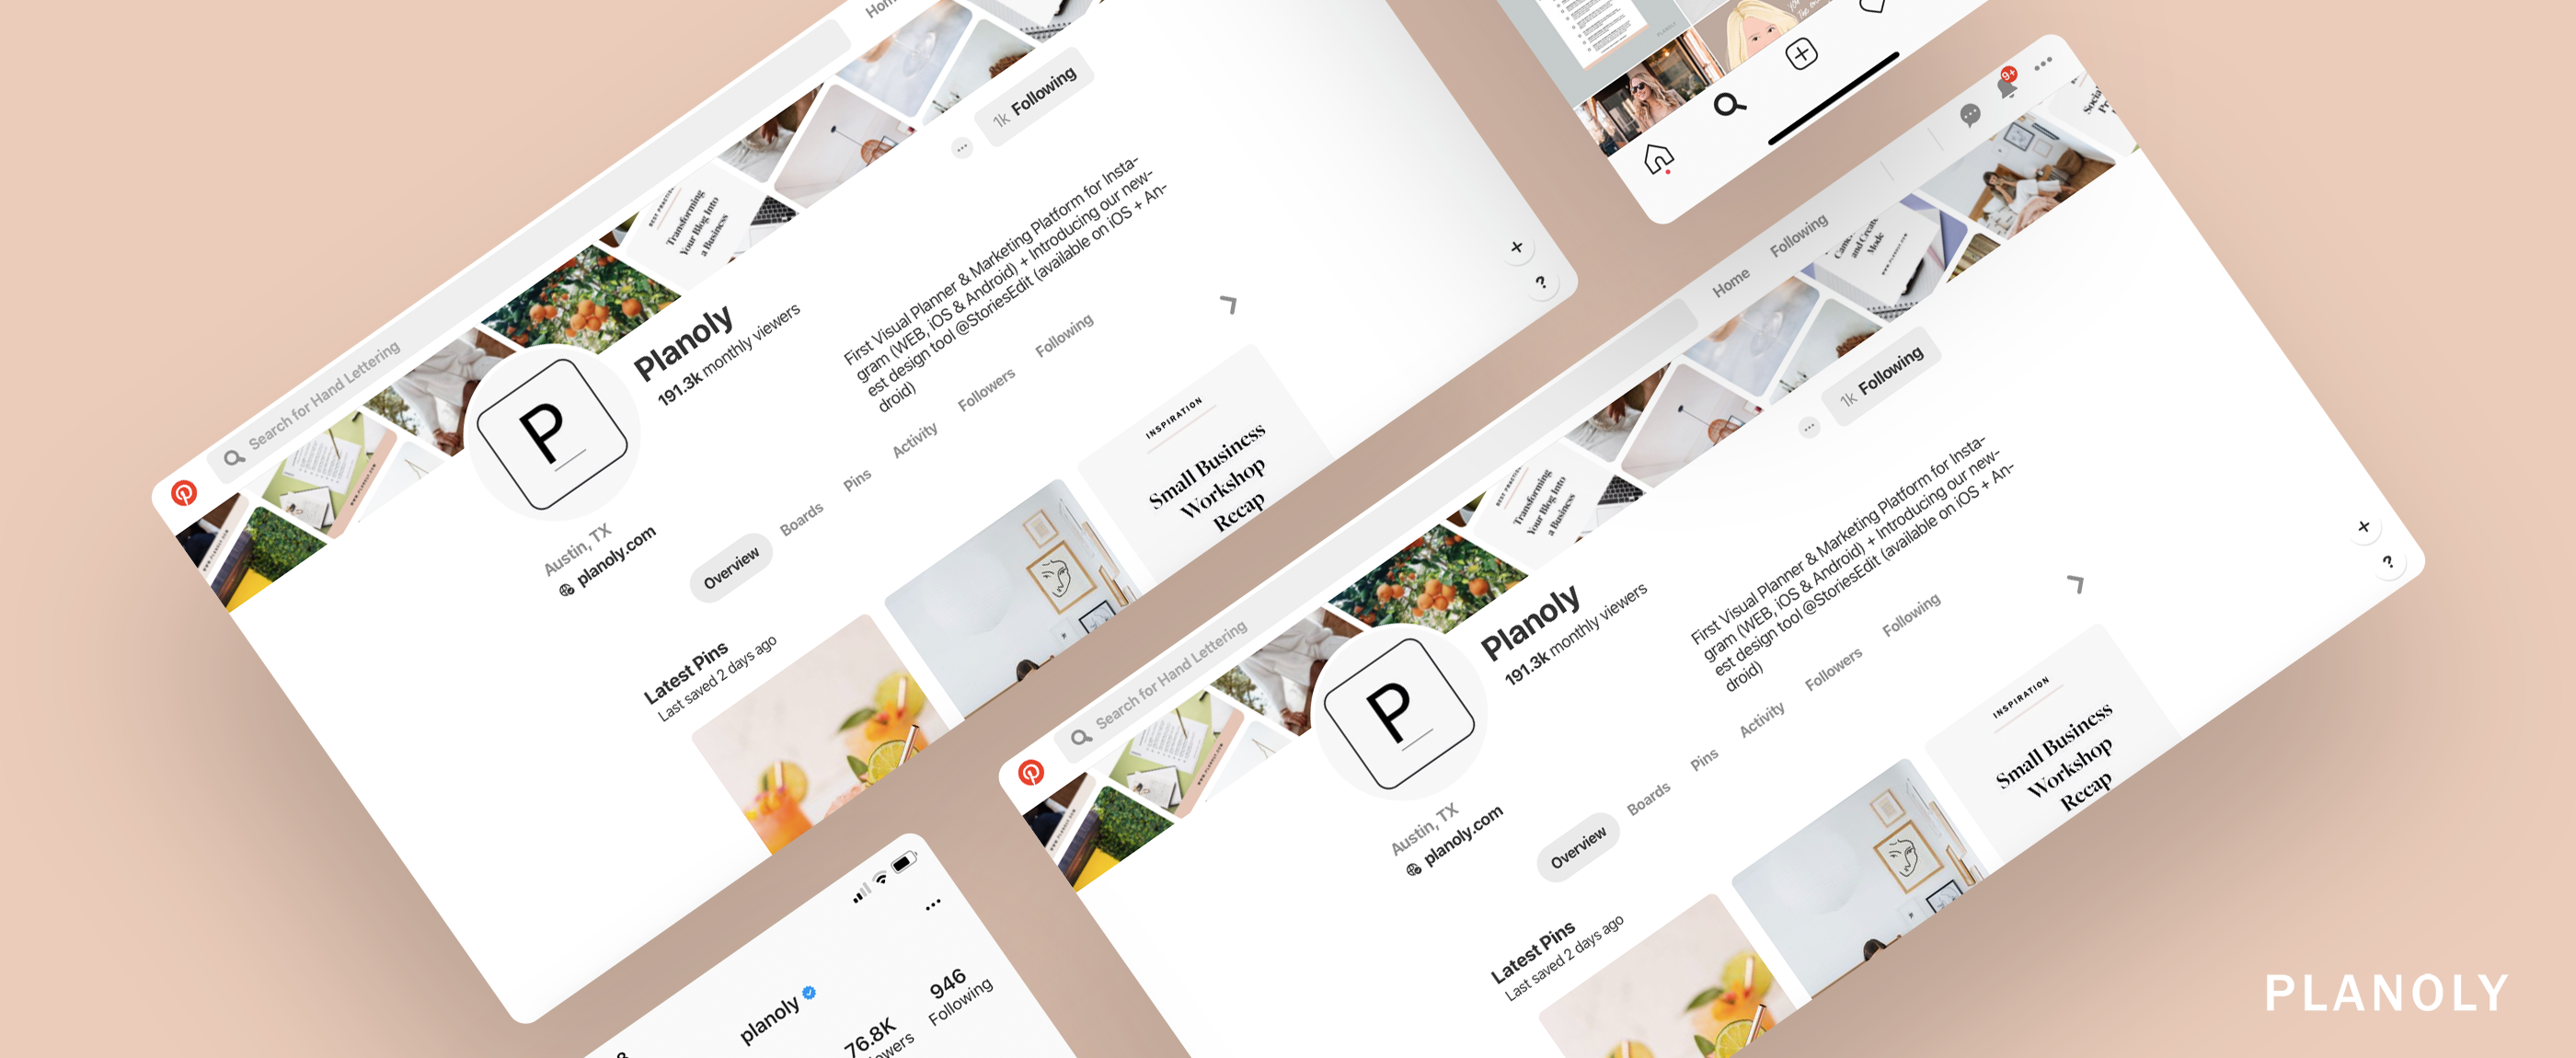 PLANOLY-Blog-Post-Webinar-Recap-How-to-Win-on-Both-IG-Pinterest-Banner-2